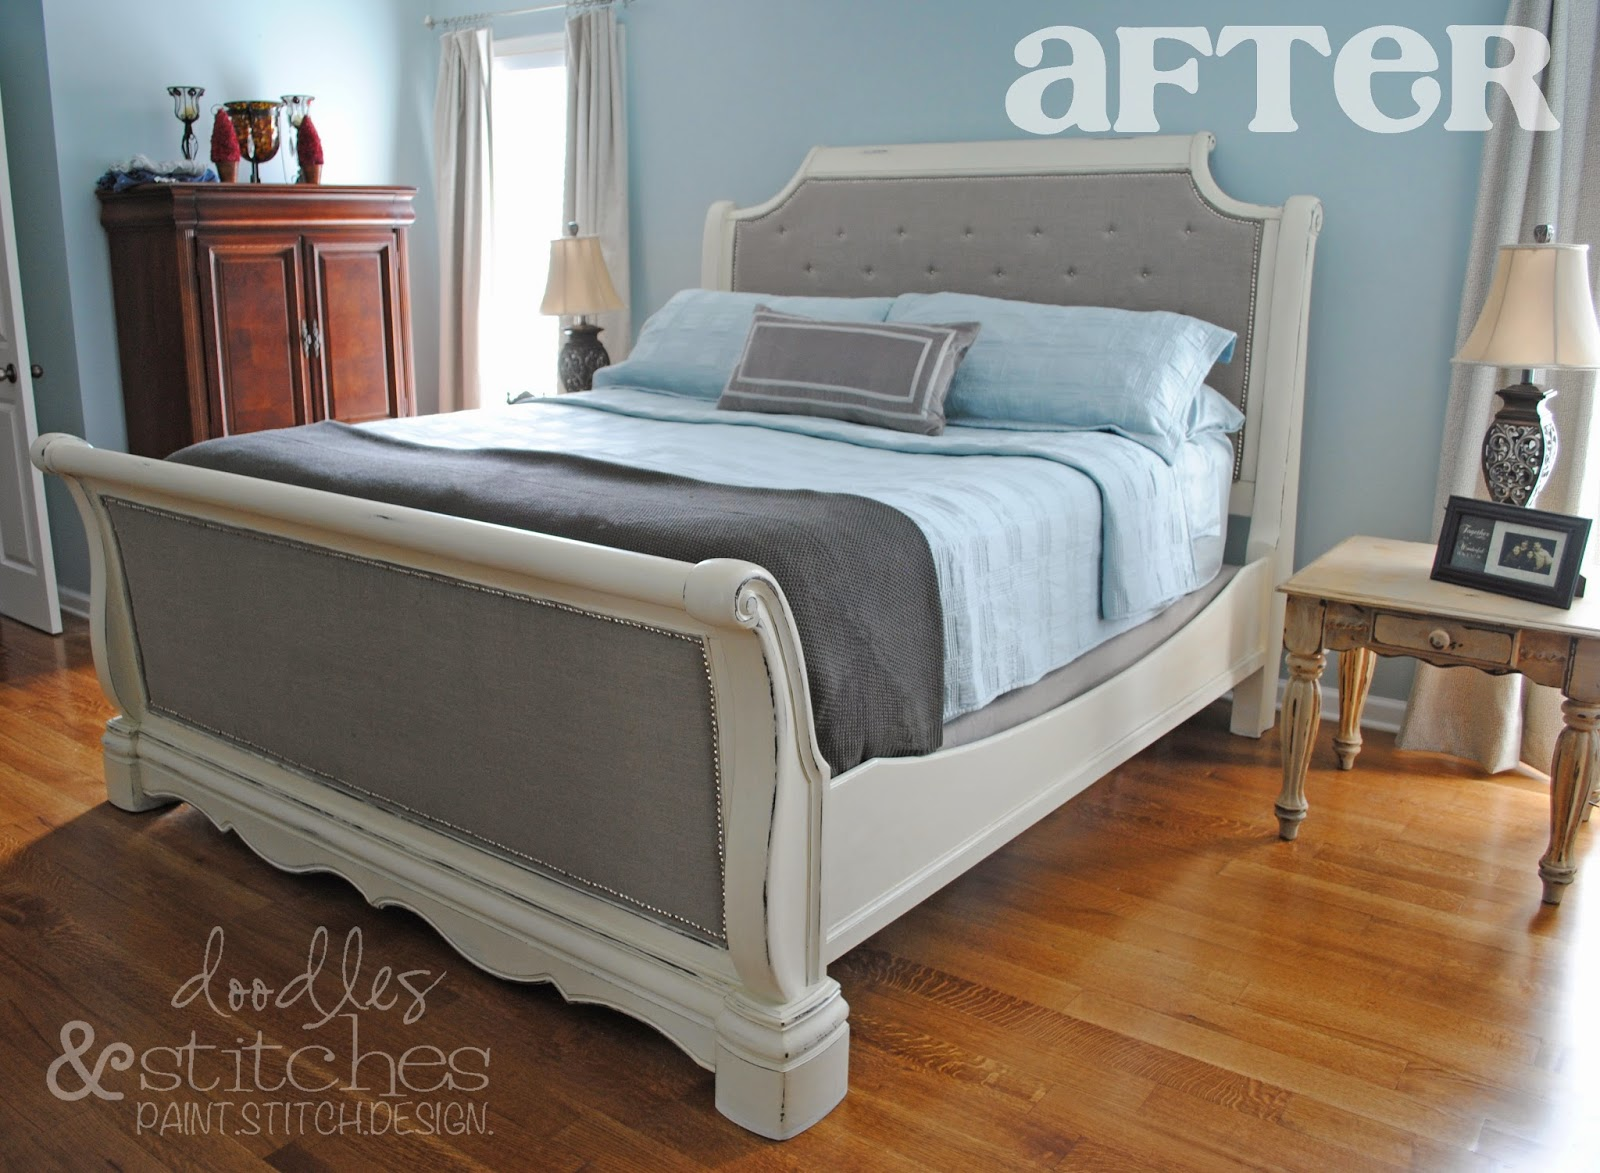 """Doodles & Stitches: """"Faux"""" Tufted Bed Tutorial"""